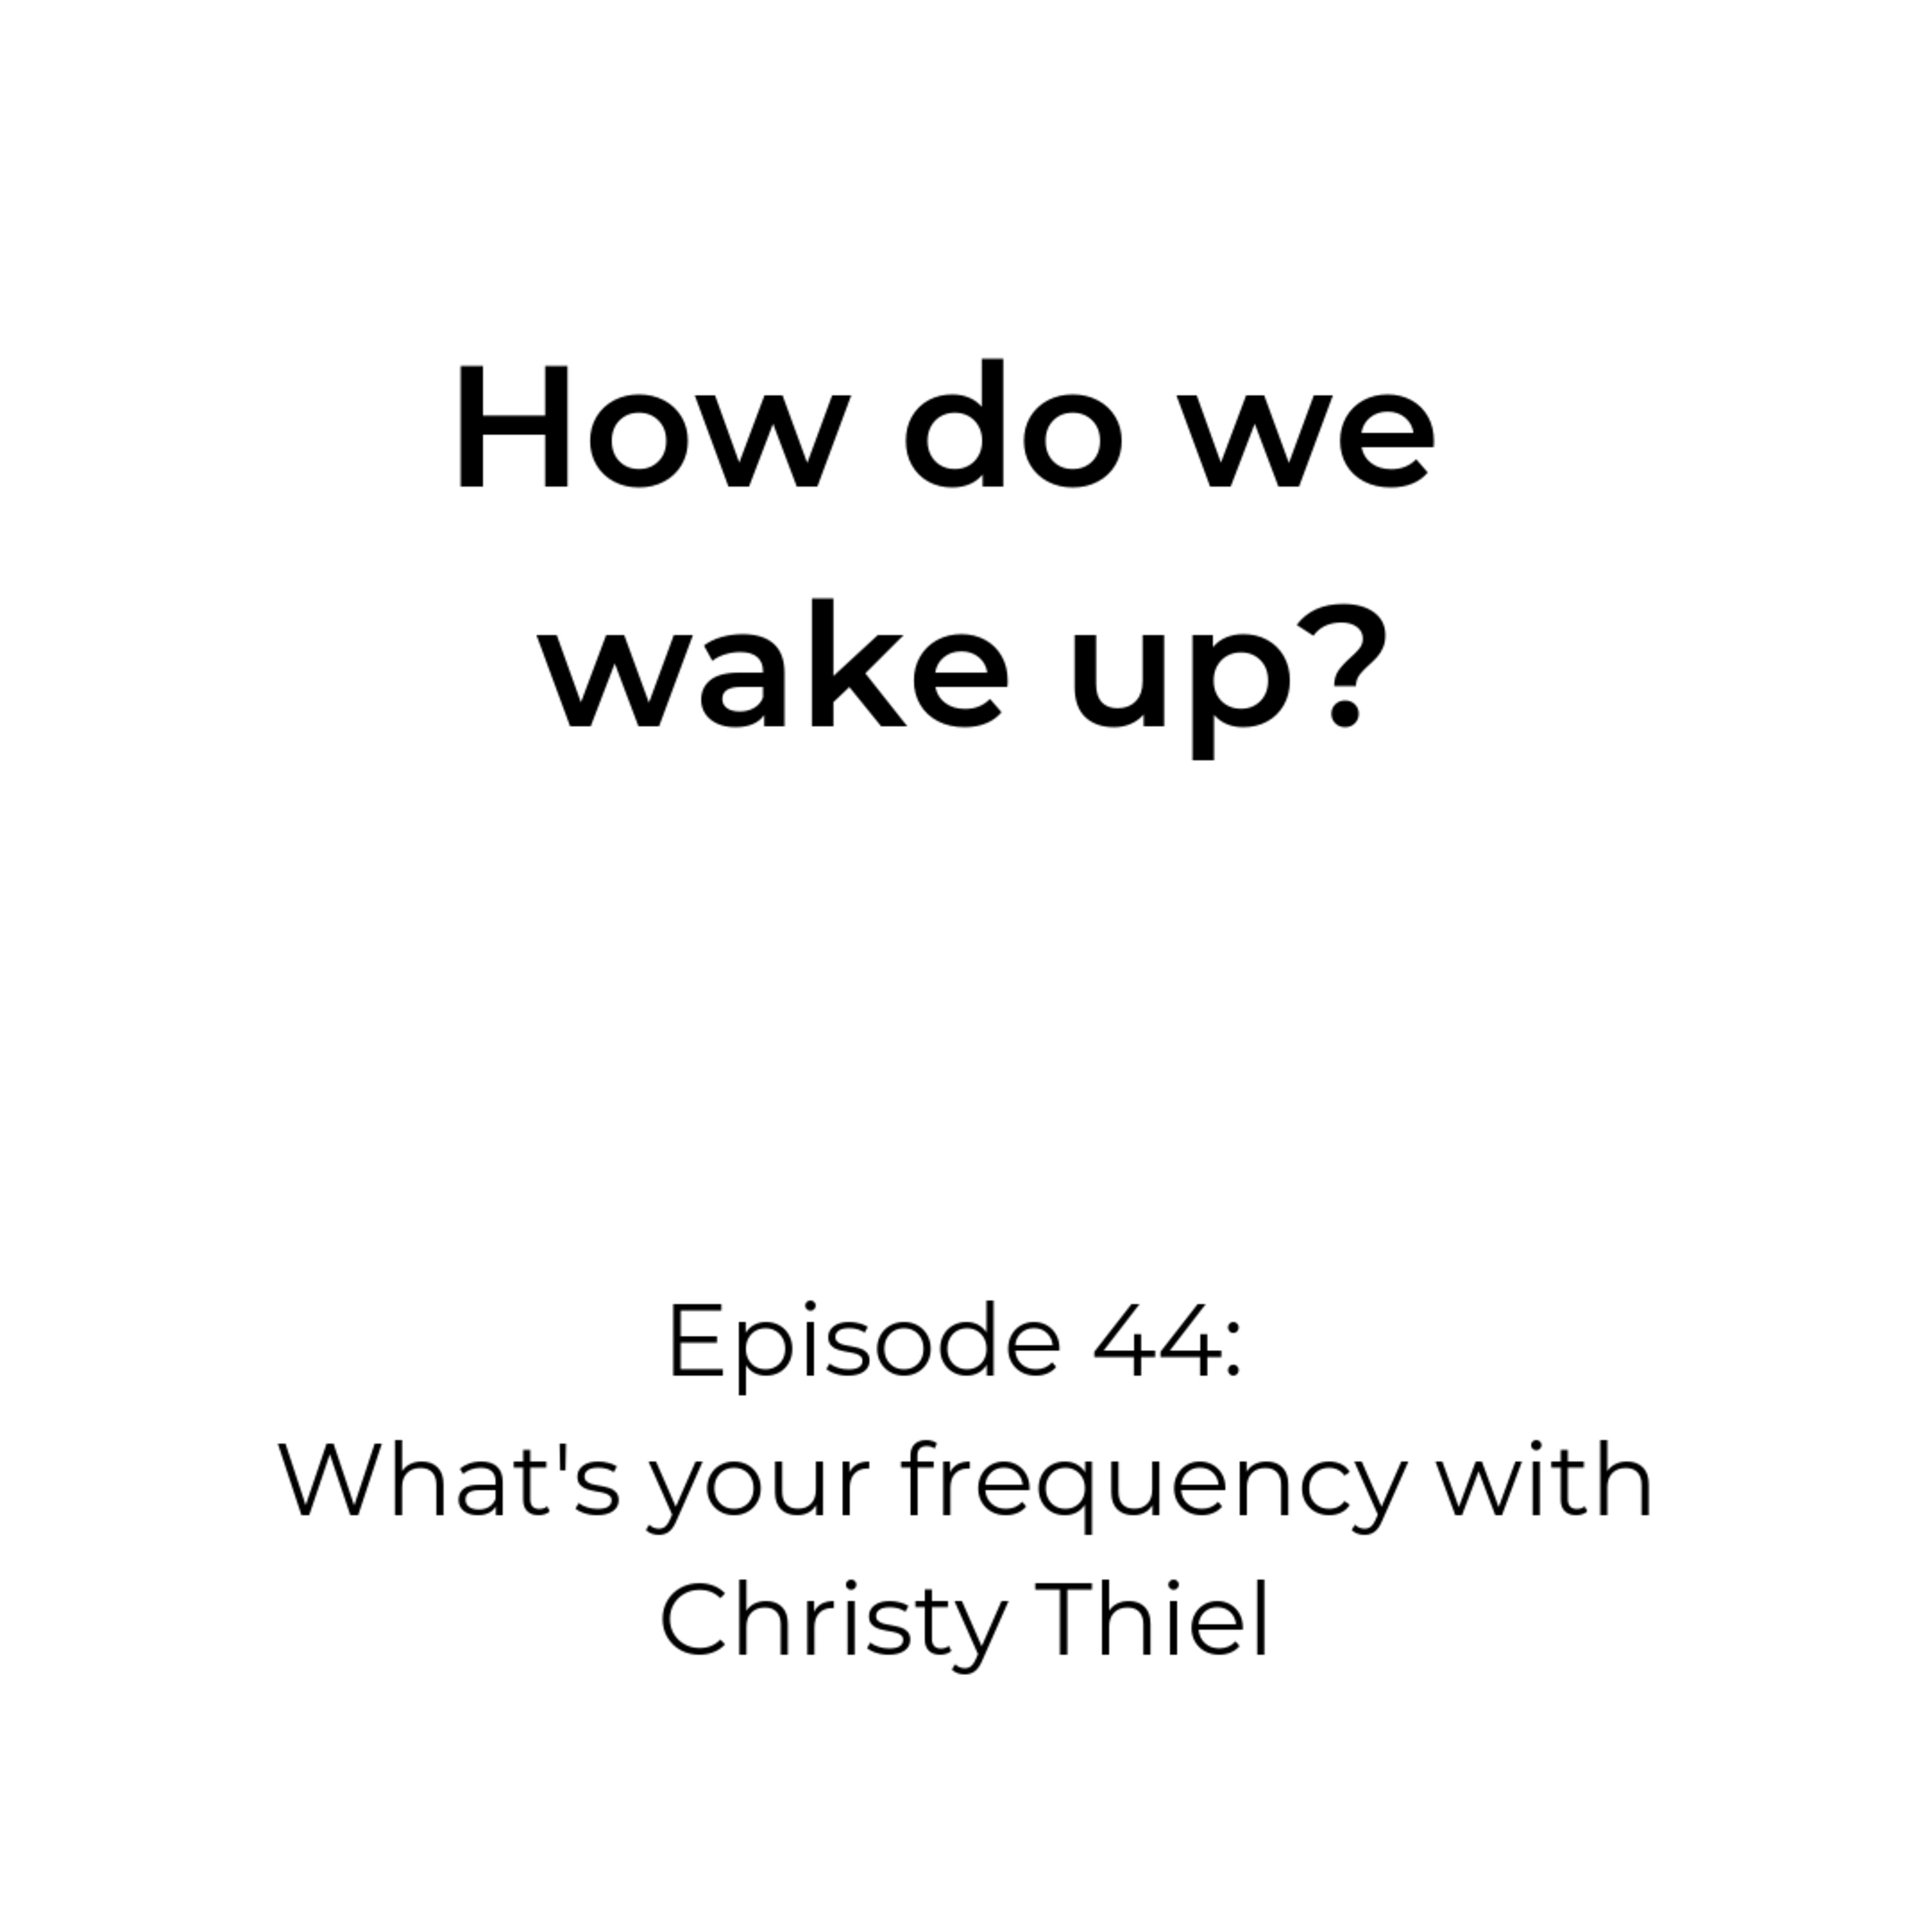 Episode 44: What's Your Frequency?